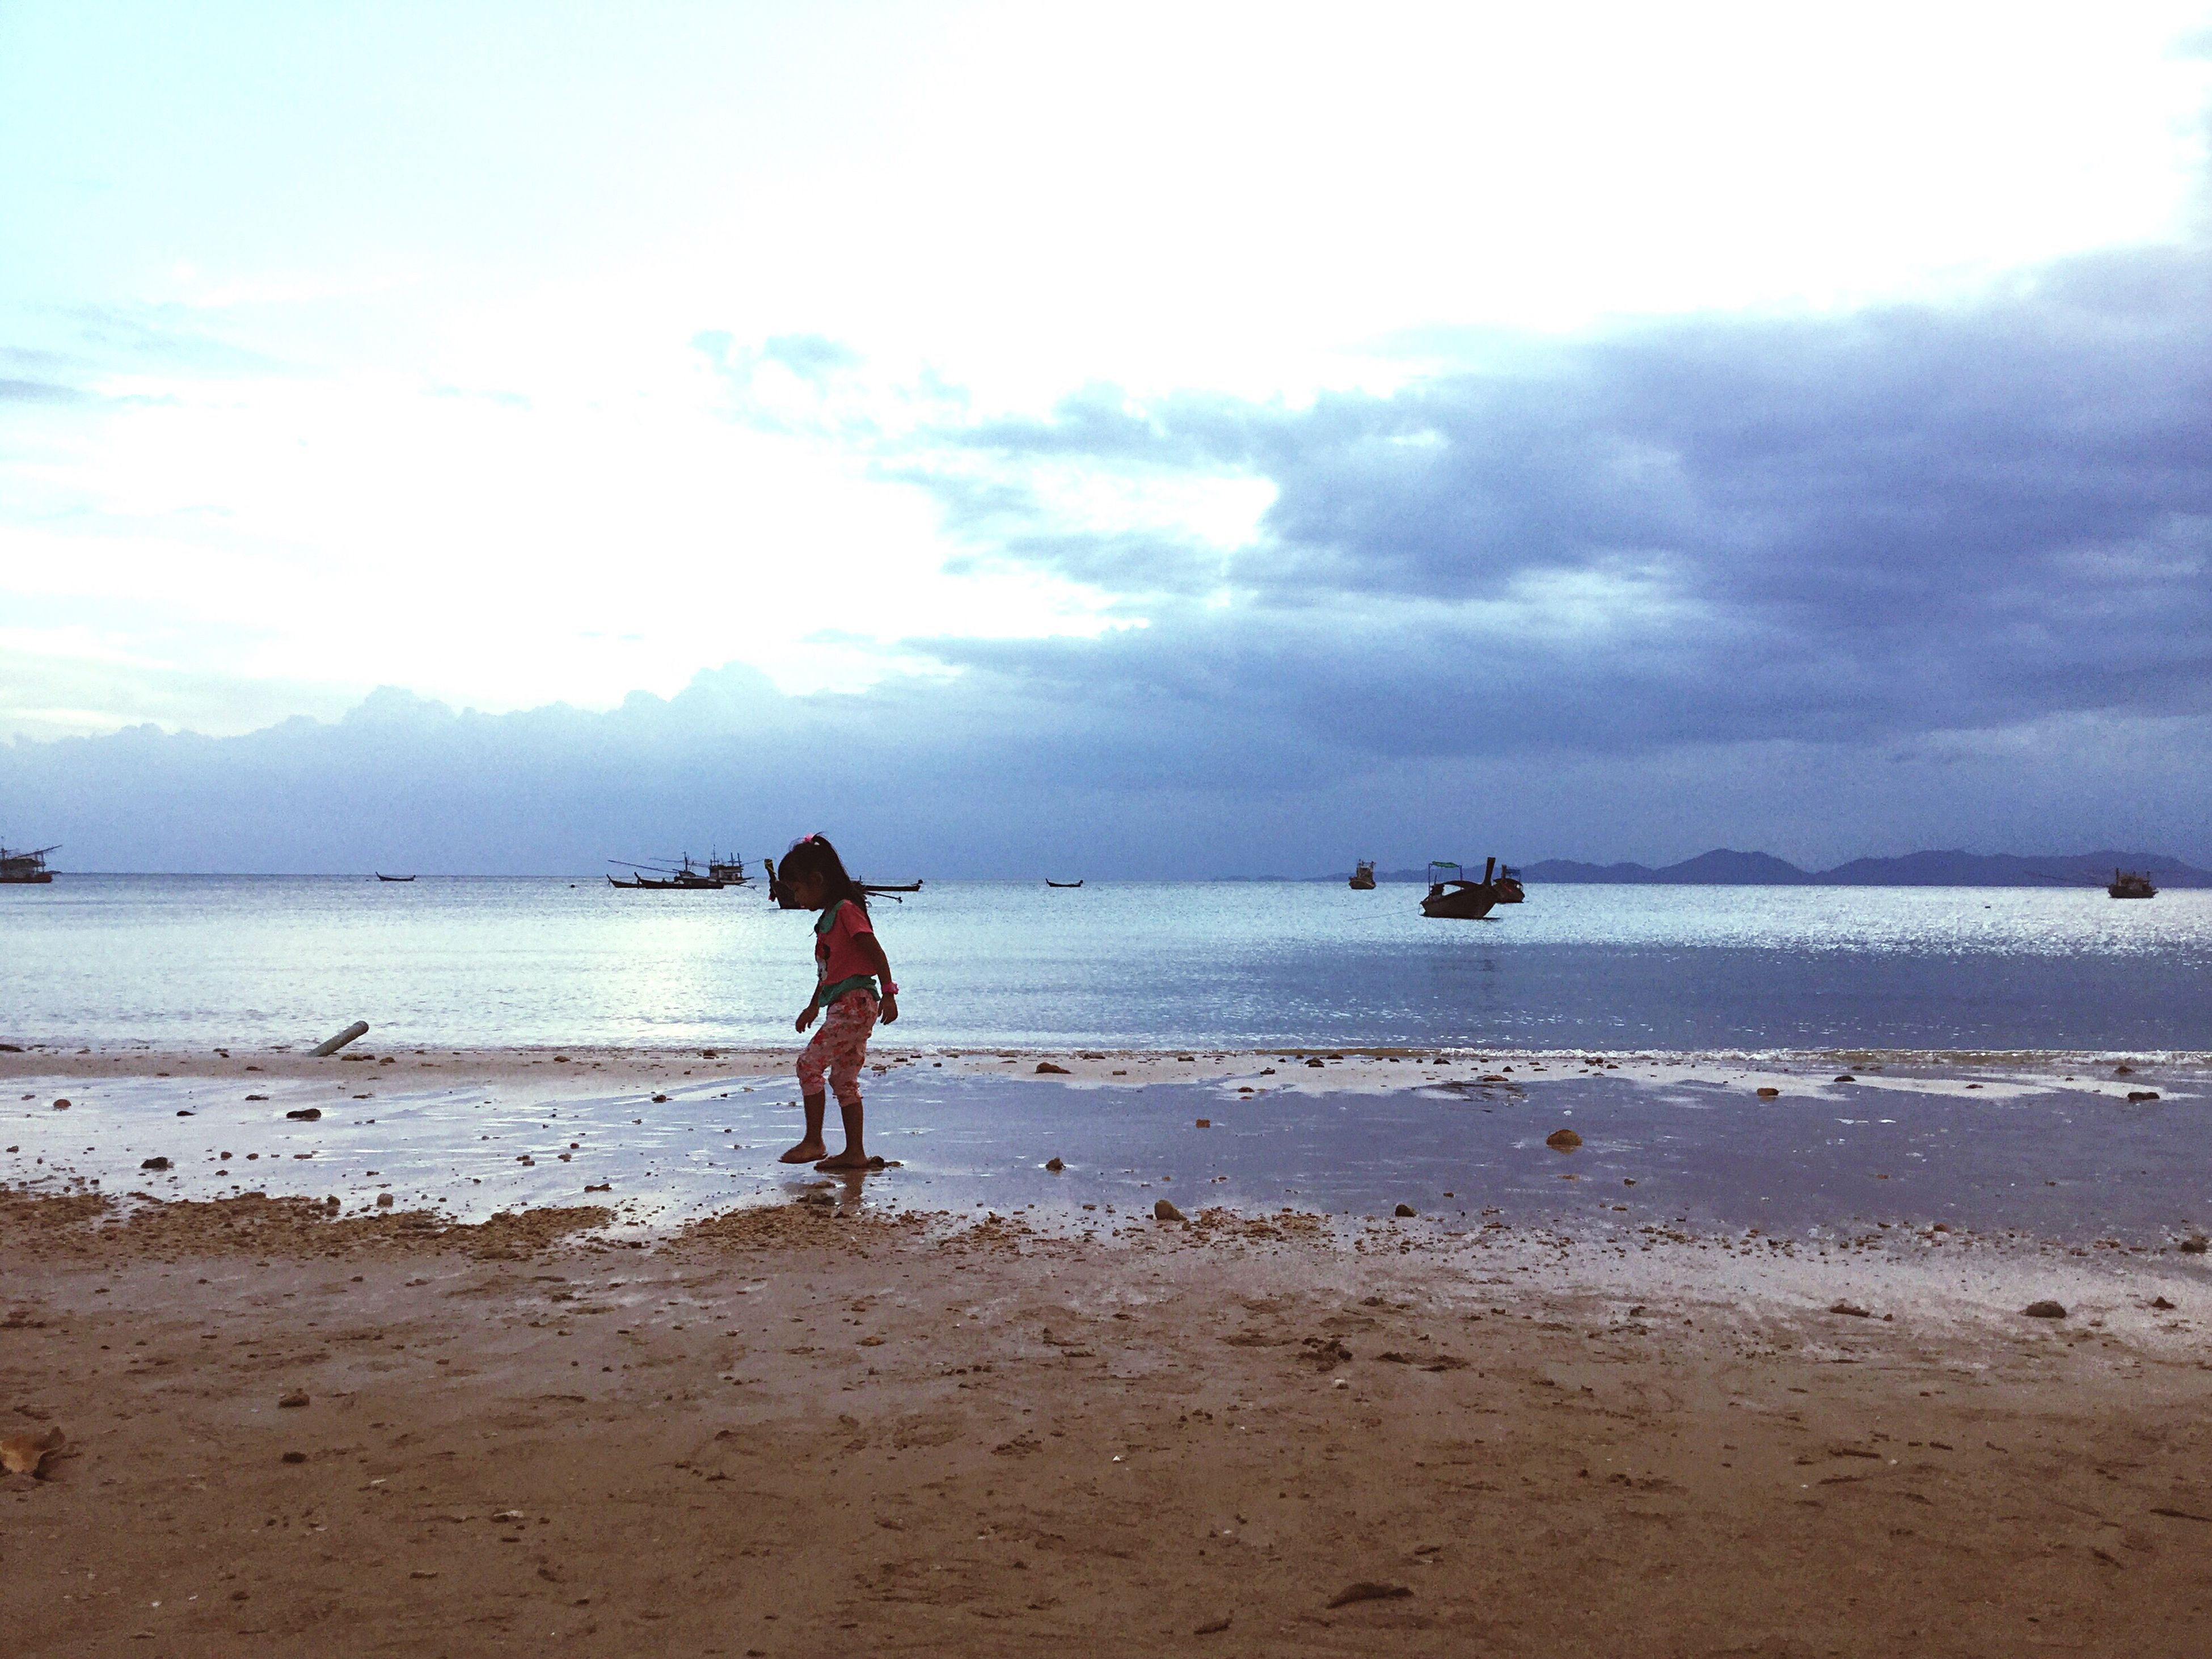 sea, beach, real people, sky, water, one person, leisure activity, beauty in nature, full length, nature, shore, cloud - sky, men, lifestyles, sand, scenics, standing, outdoors, day, horizon over water, vacations, tranquil scene, adult, people